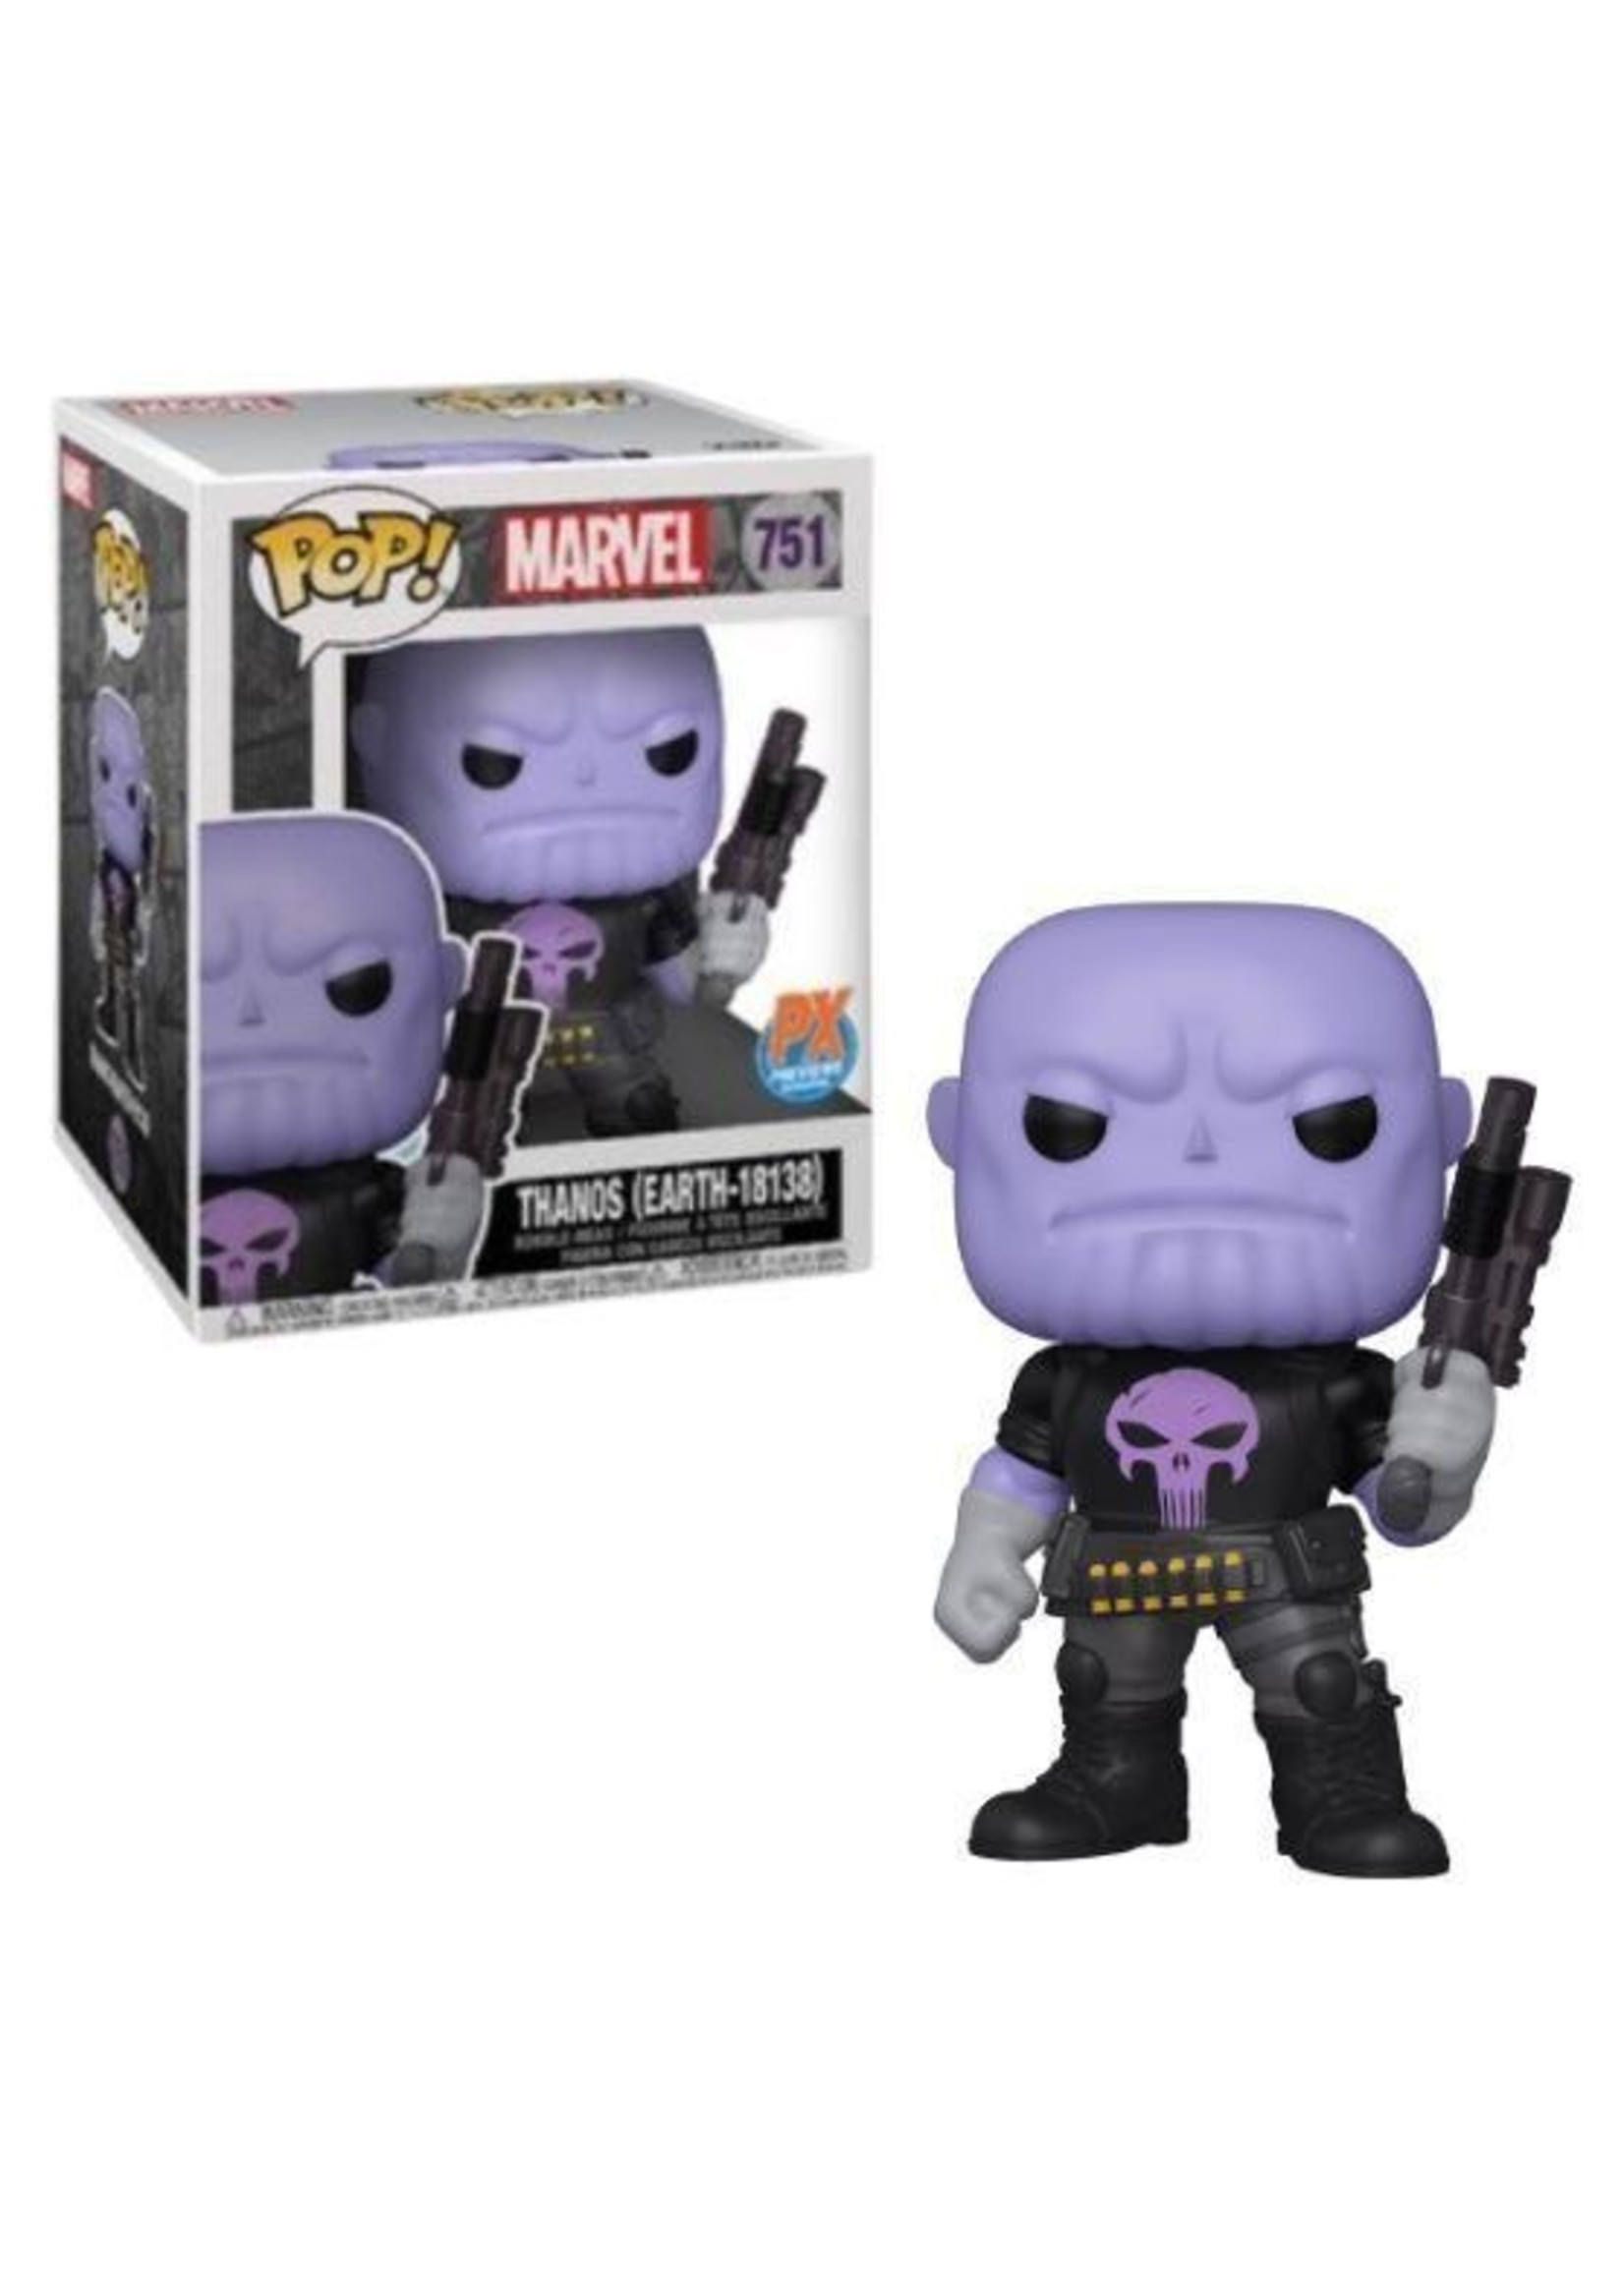 Thanos Punisher Earth-18138 PX